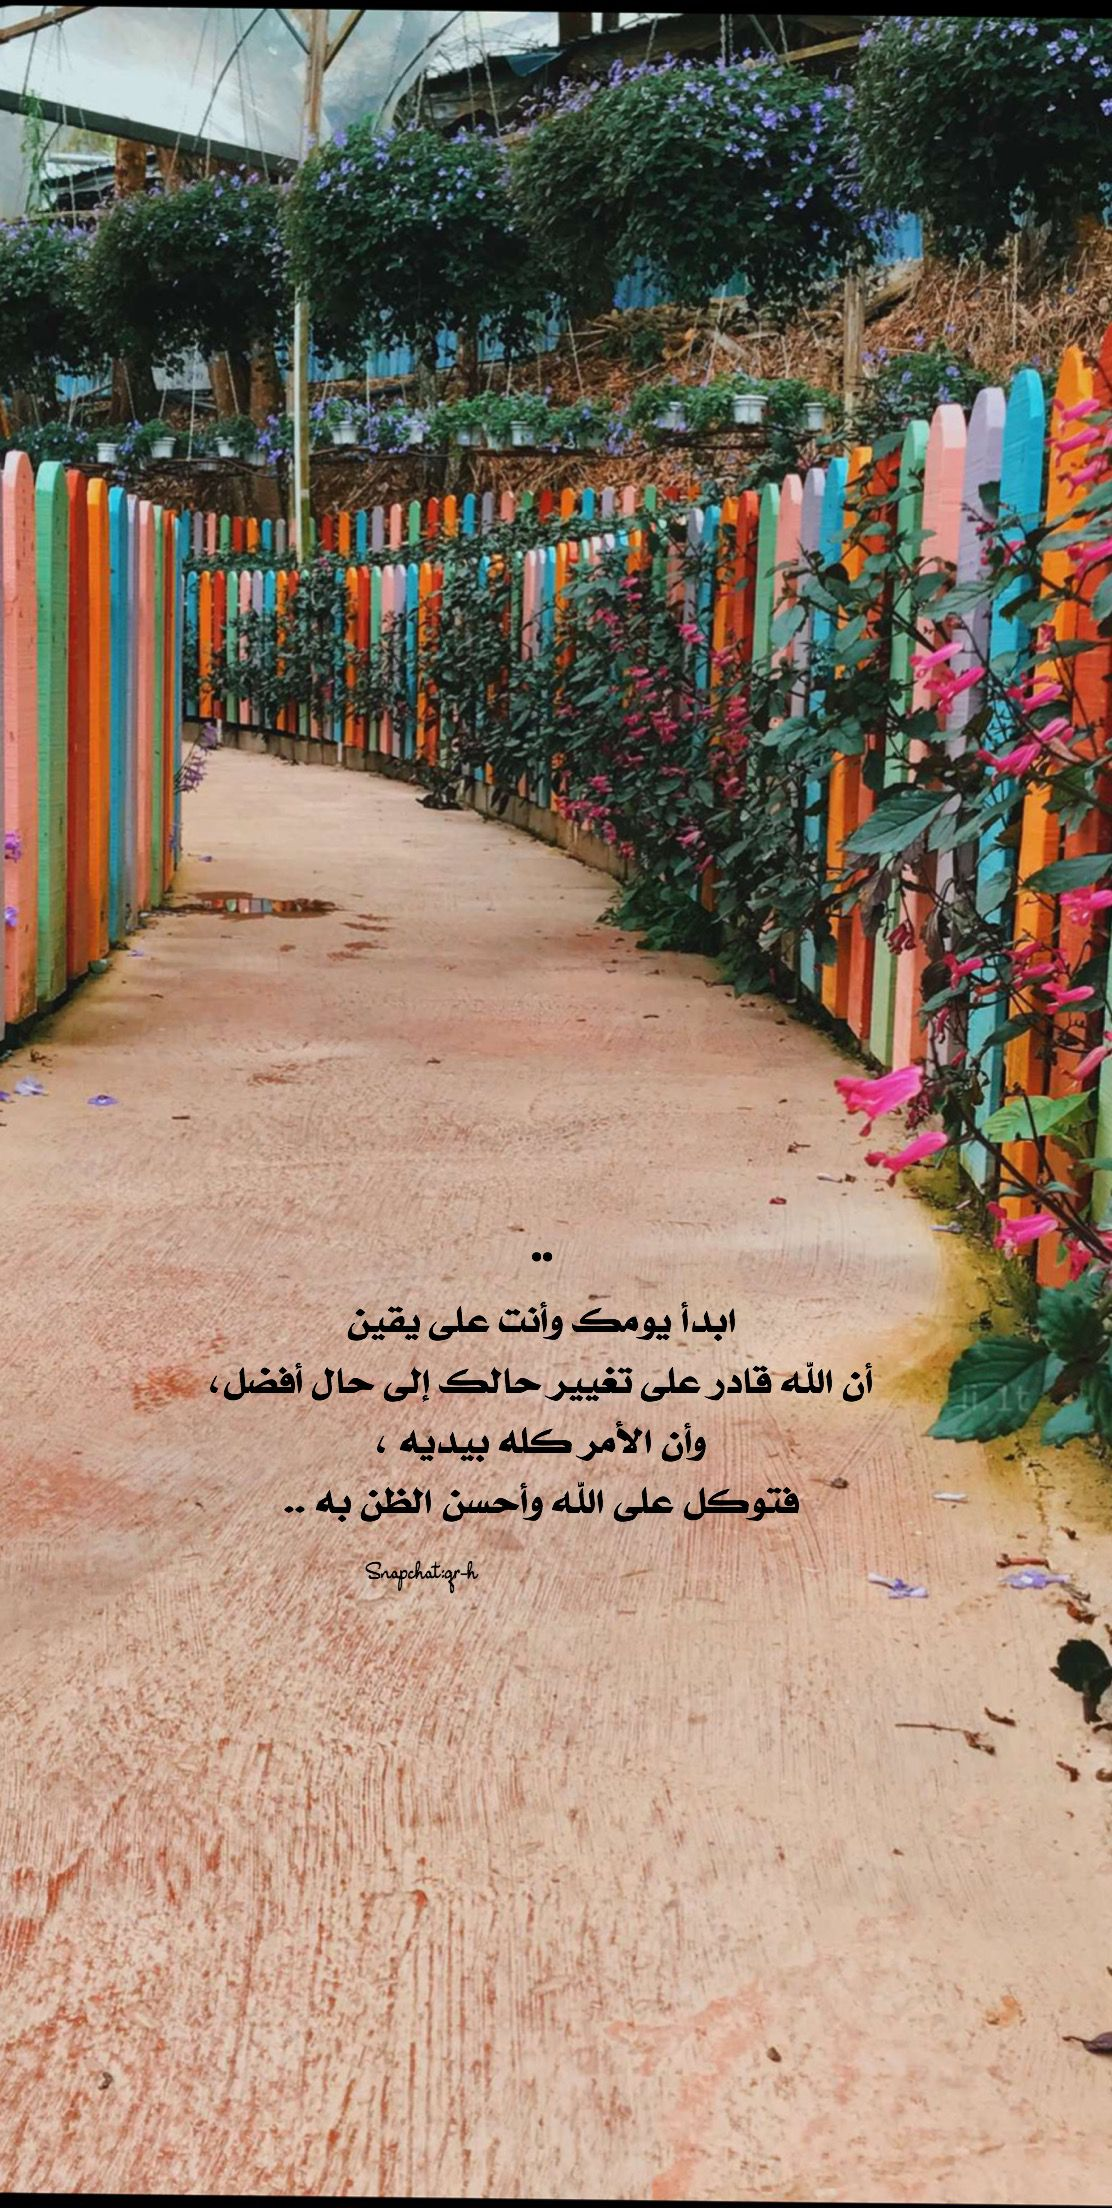 Pin By Al On يومياتي Positive Quotes Positivity Sidewalk